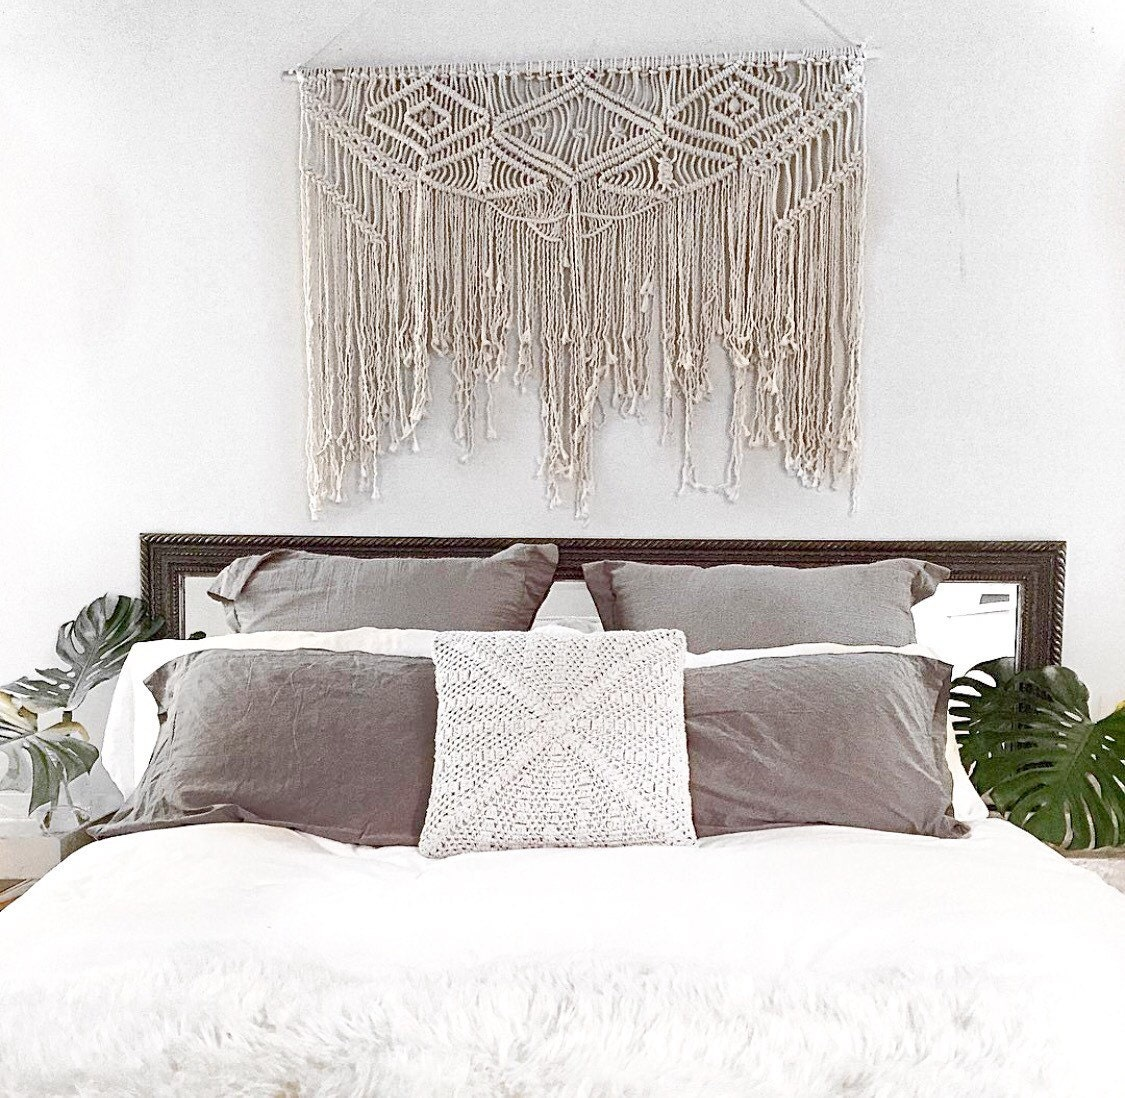 Wall Hangings For Bedrooms Large Macram 233 Wall Hanging Tapestry Weaving